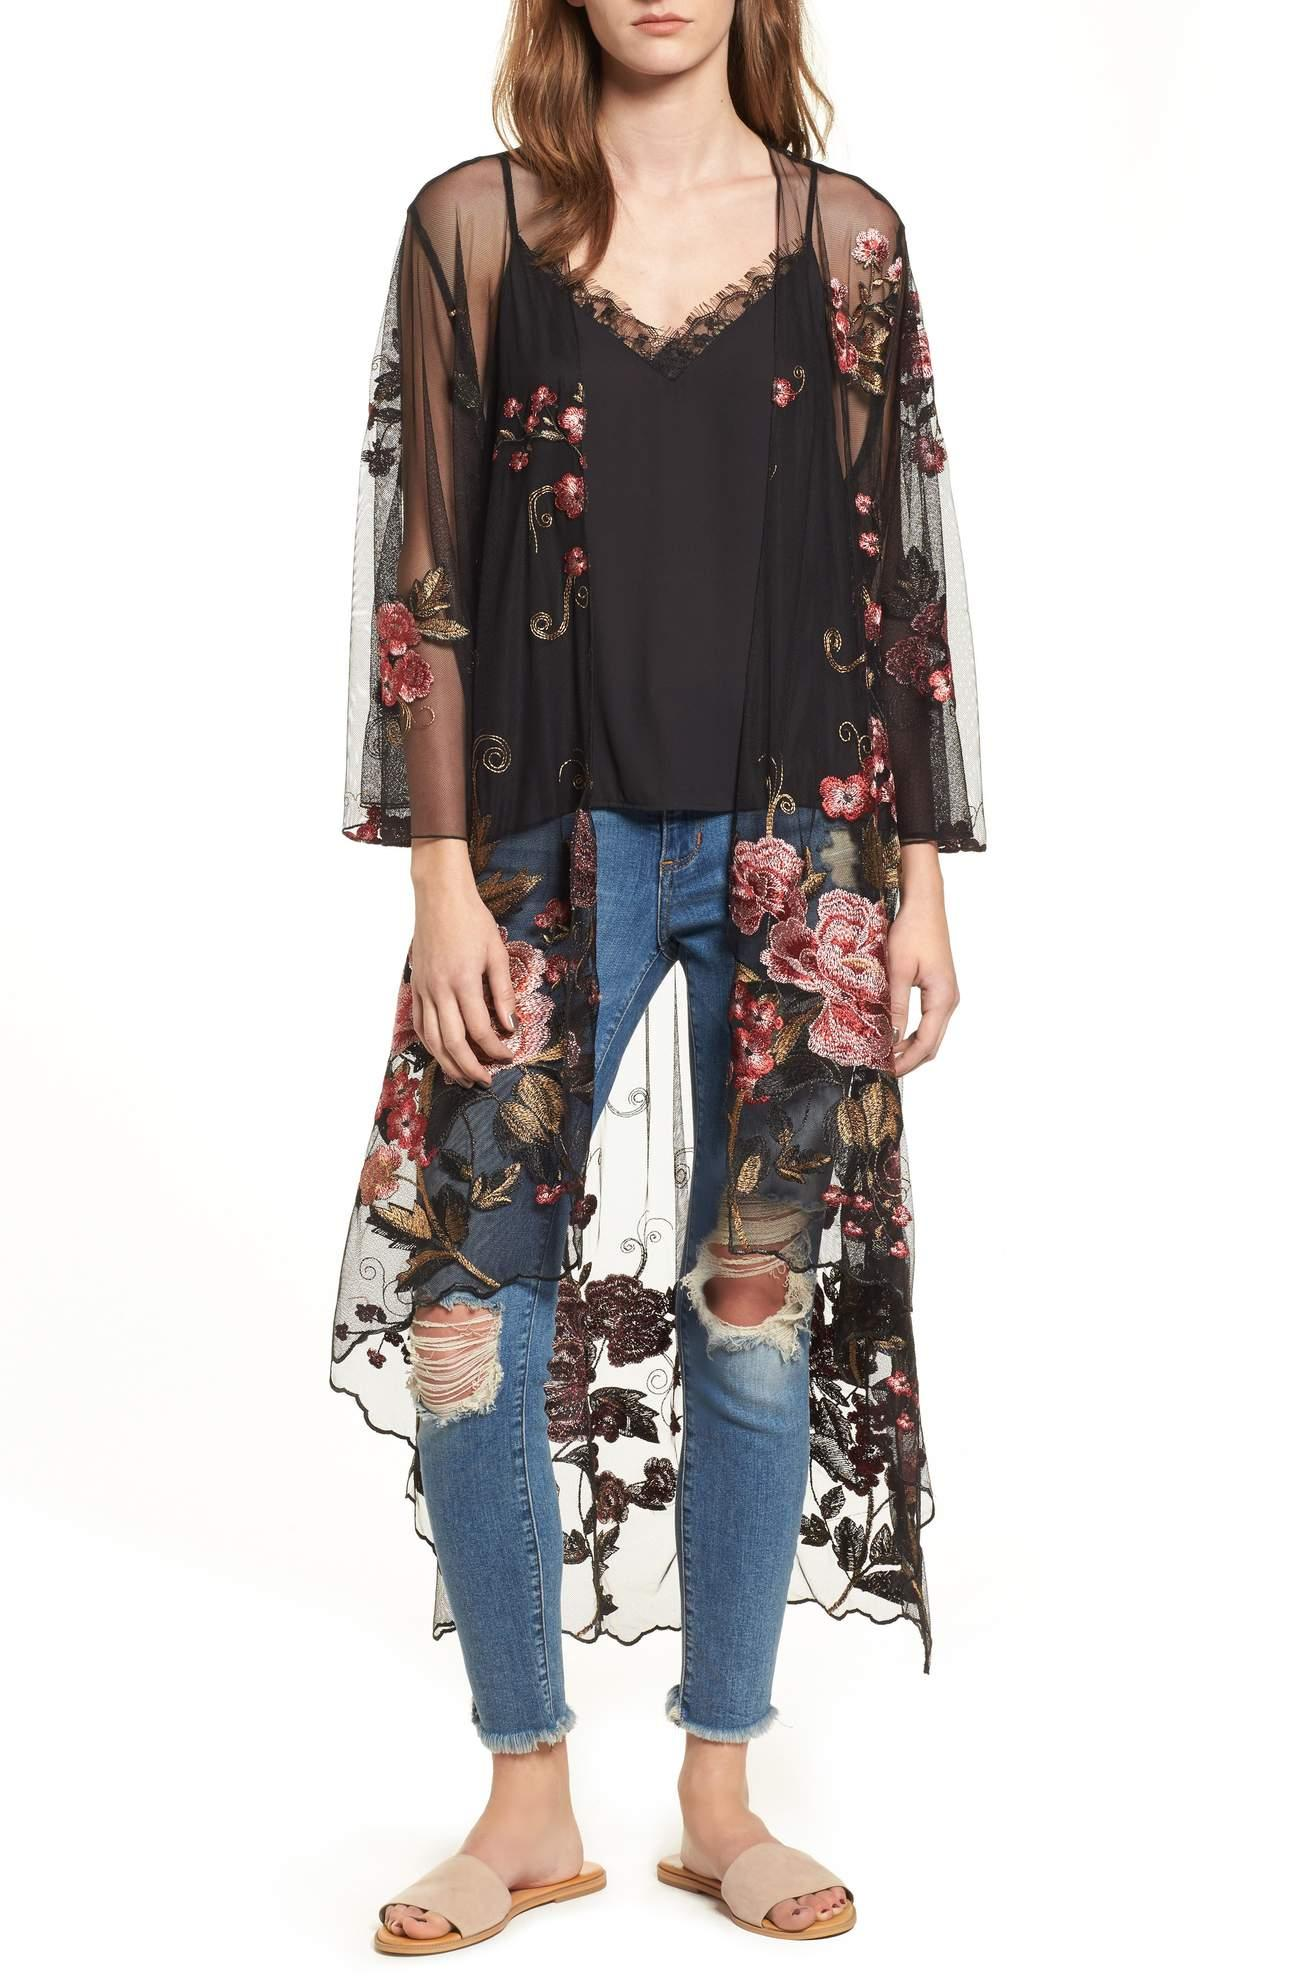 <p>Pair this Sunset Sheer Embroidered Kimono/BAND OF GYPSIES with anything and everything this Spring.{&amp;nbsp;} Romantic embroidered blooms decorate a delicately sheer kimono that mixes boudoir and boho styles with ease. $129.00 at Nordstrom. (Image: Nordstrom){&amp;nbsp;}</p><p></p>